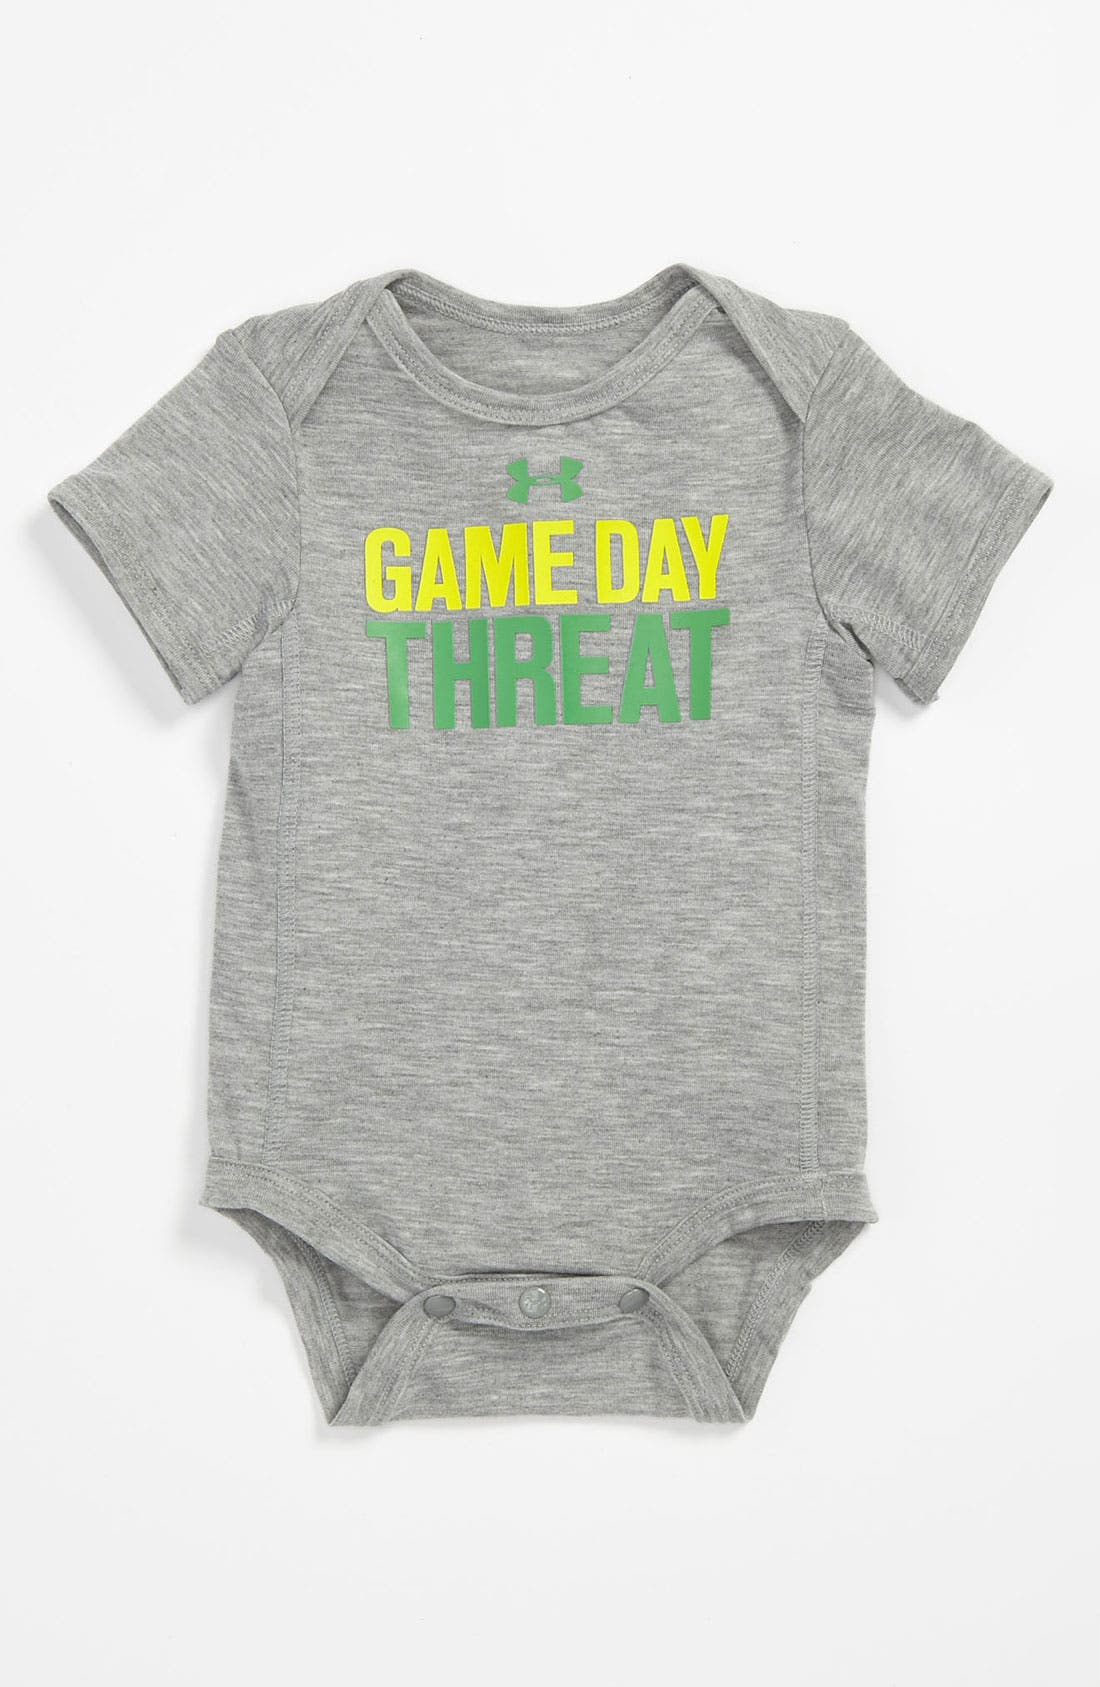 Alternate Image 1 Selected - Under Armour 'Game' Bodysuit (Baby)